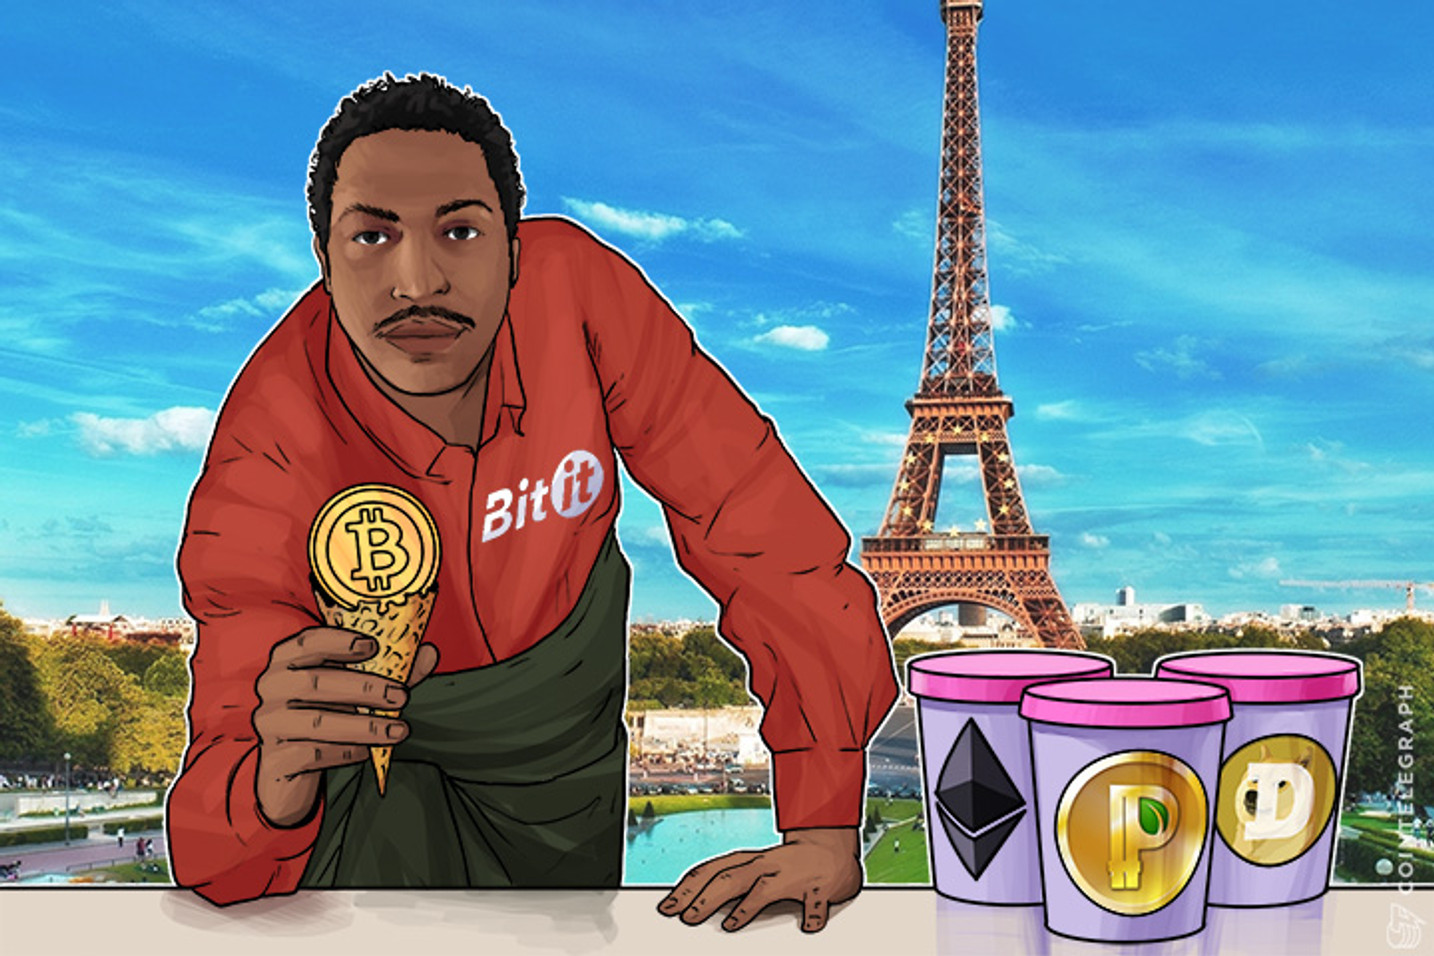 Bitit Launches to Solve Bitcoin Biggest Issues - Accessibility and Fraud